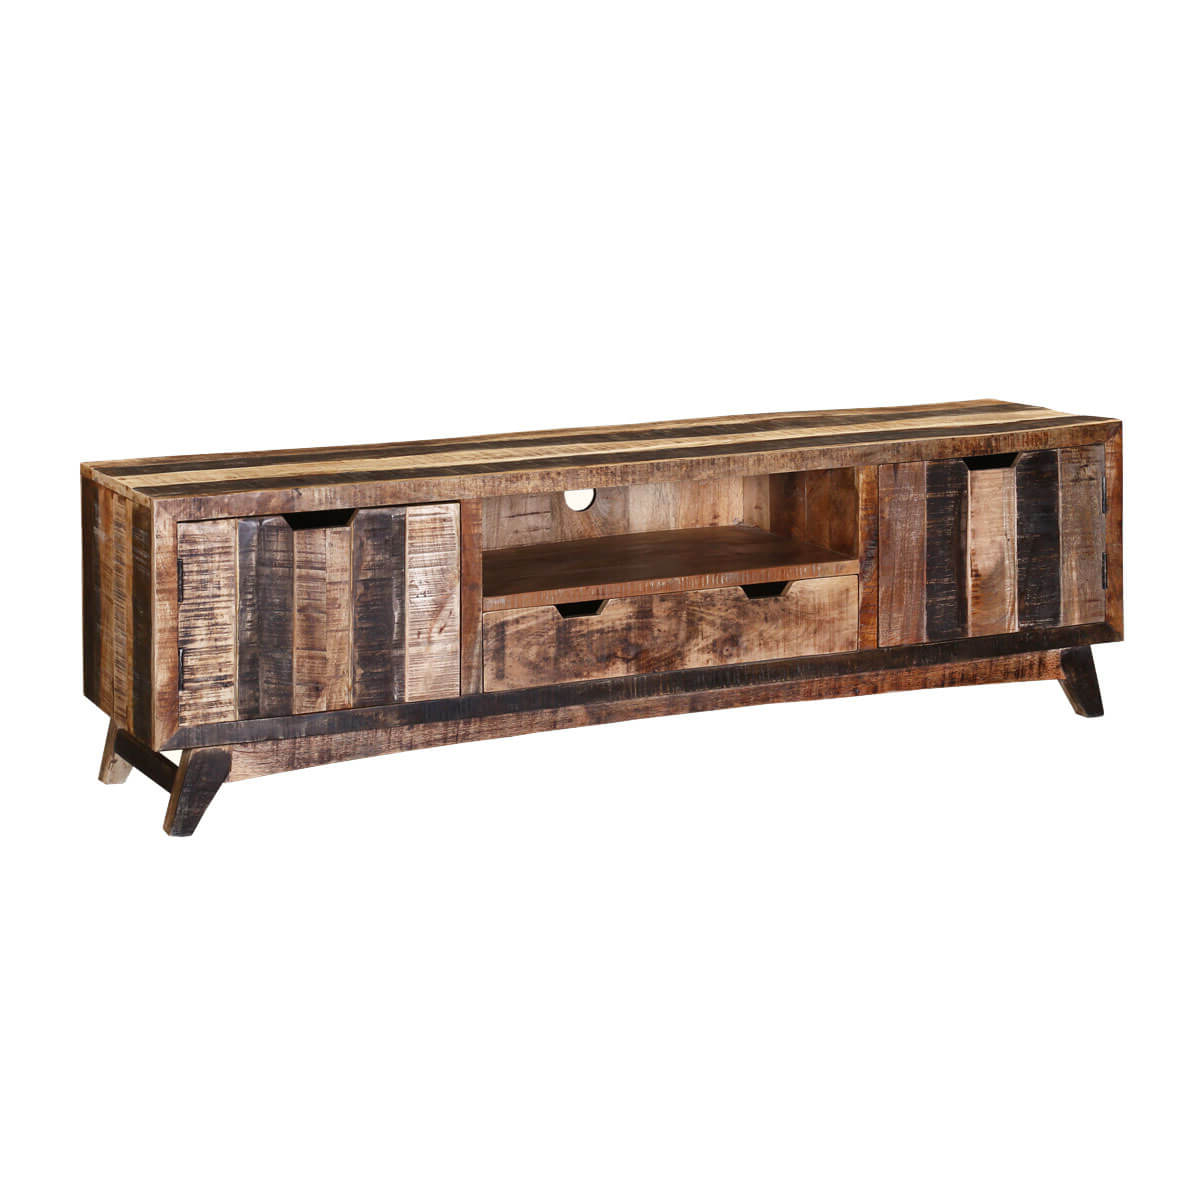 Mango Wood Tv Cabinets Throughout Fashionable Boulder Handcrafted 2 Drawer Rustic Mango Wood Tv Stand Media Console (View 2 of 20)